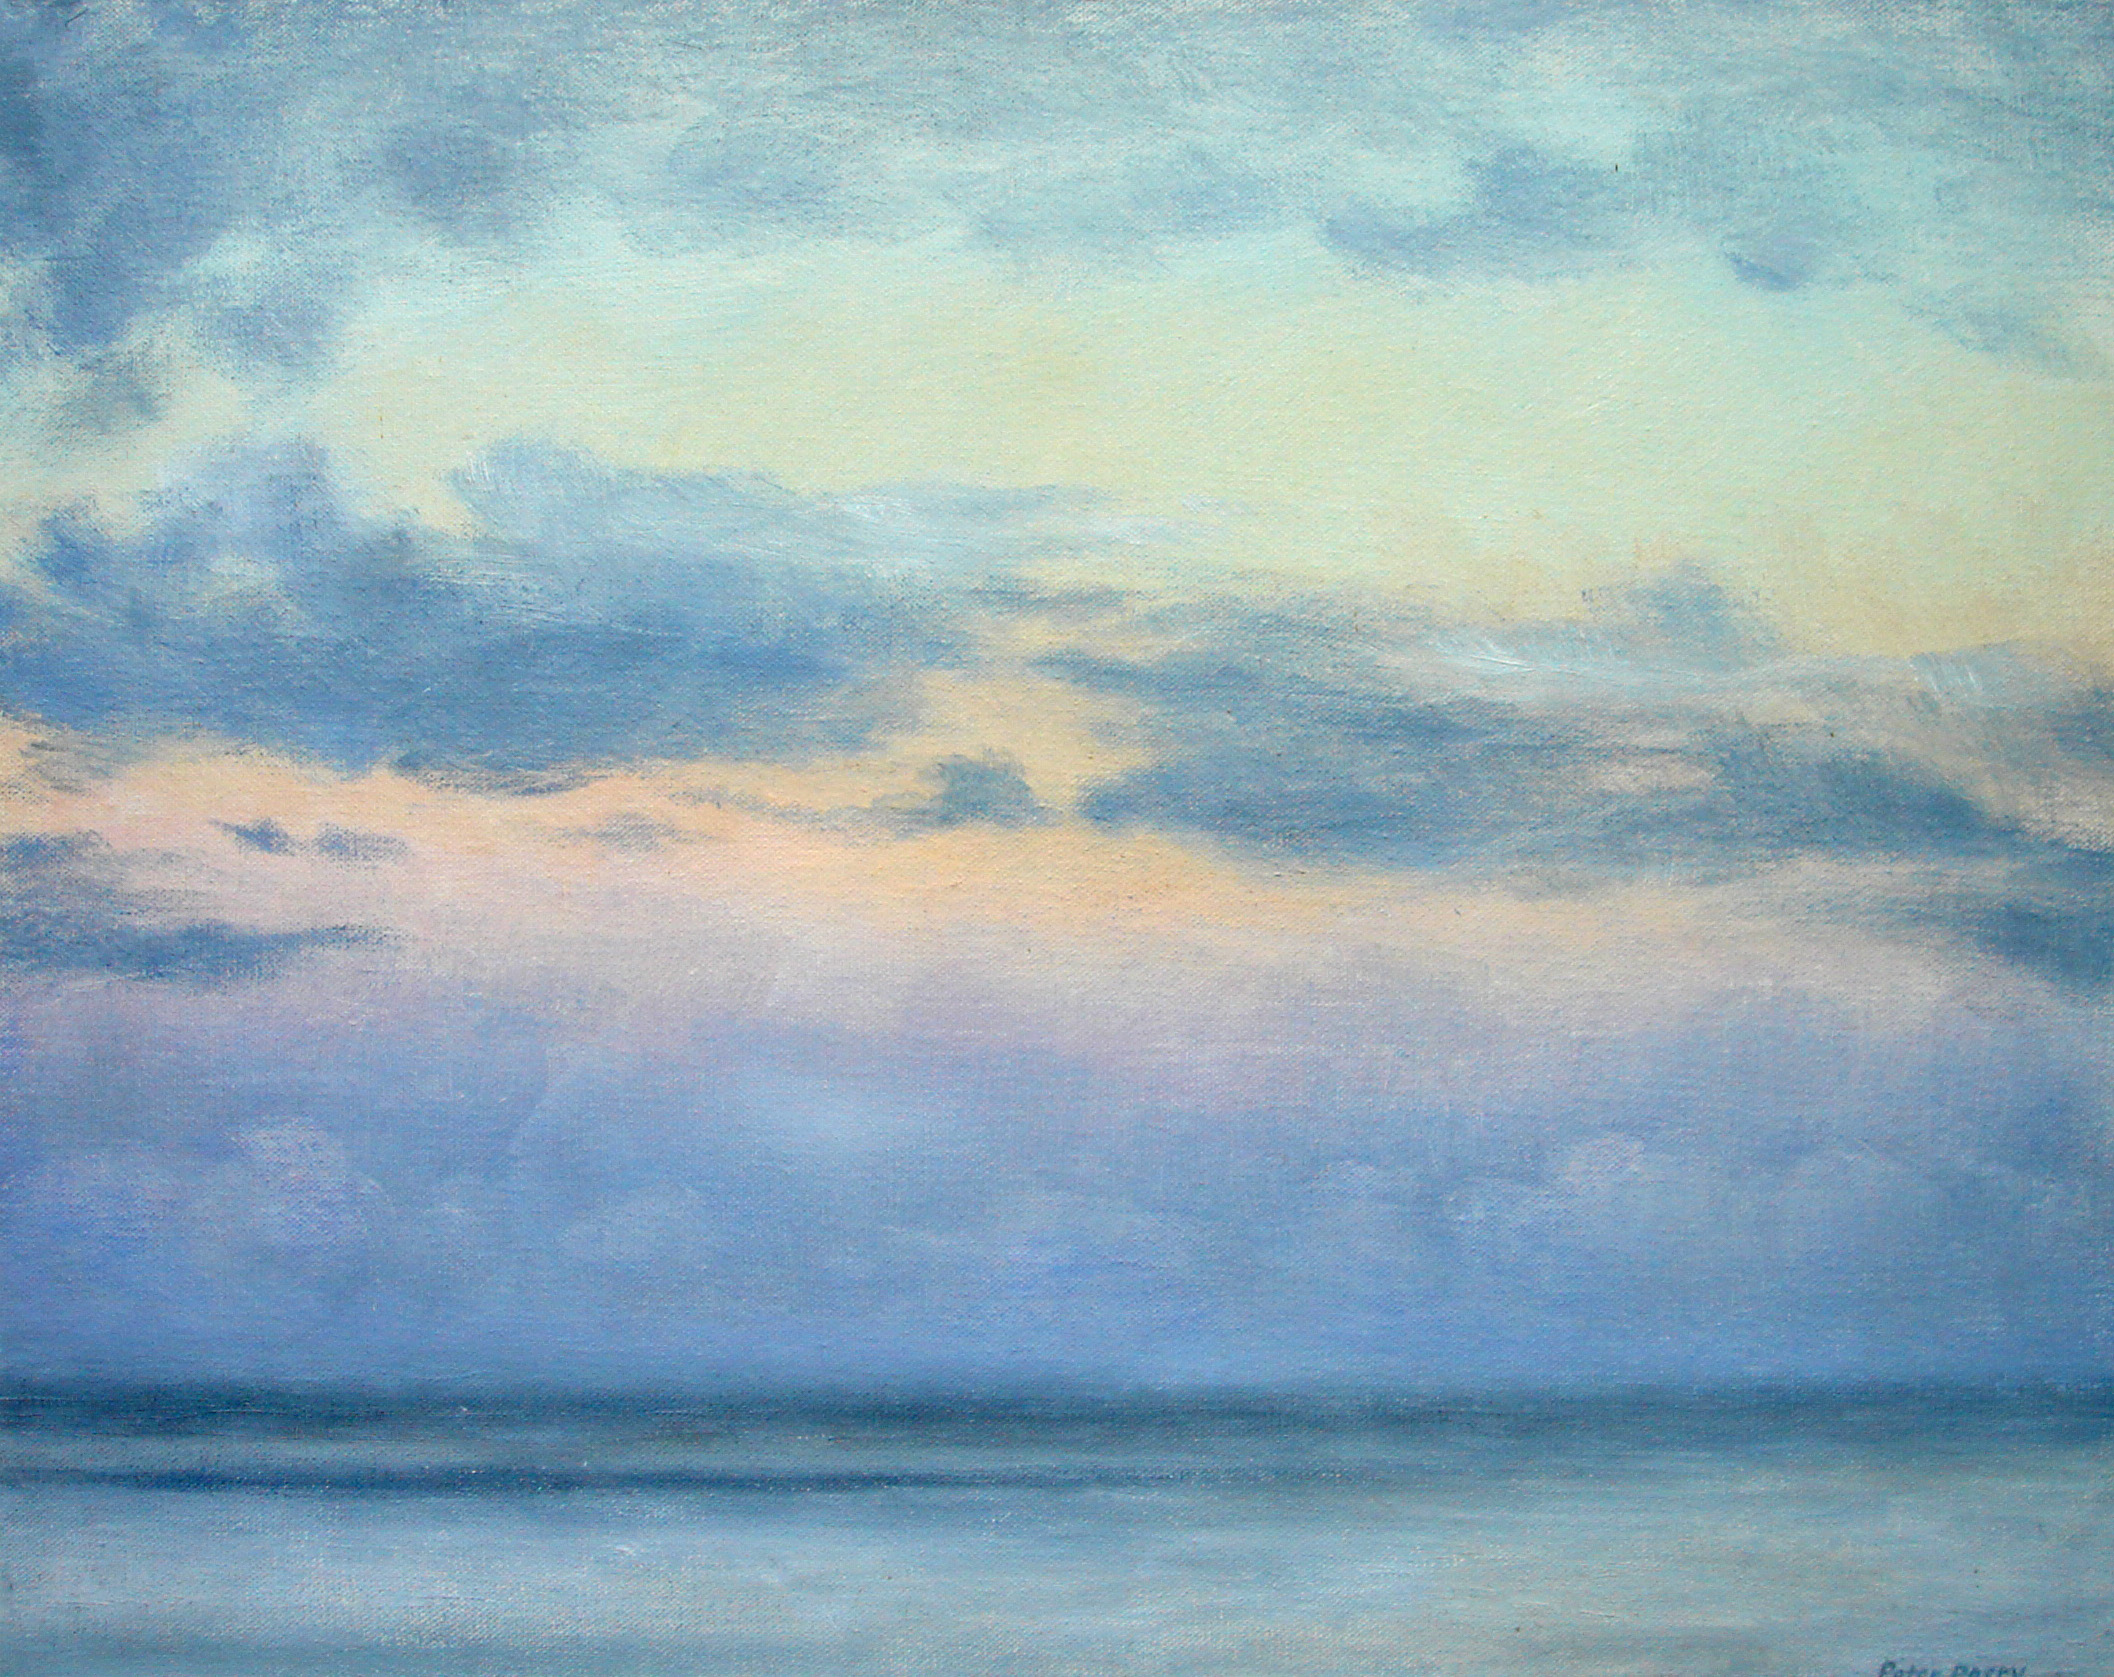 Sky study, West Cornwall